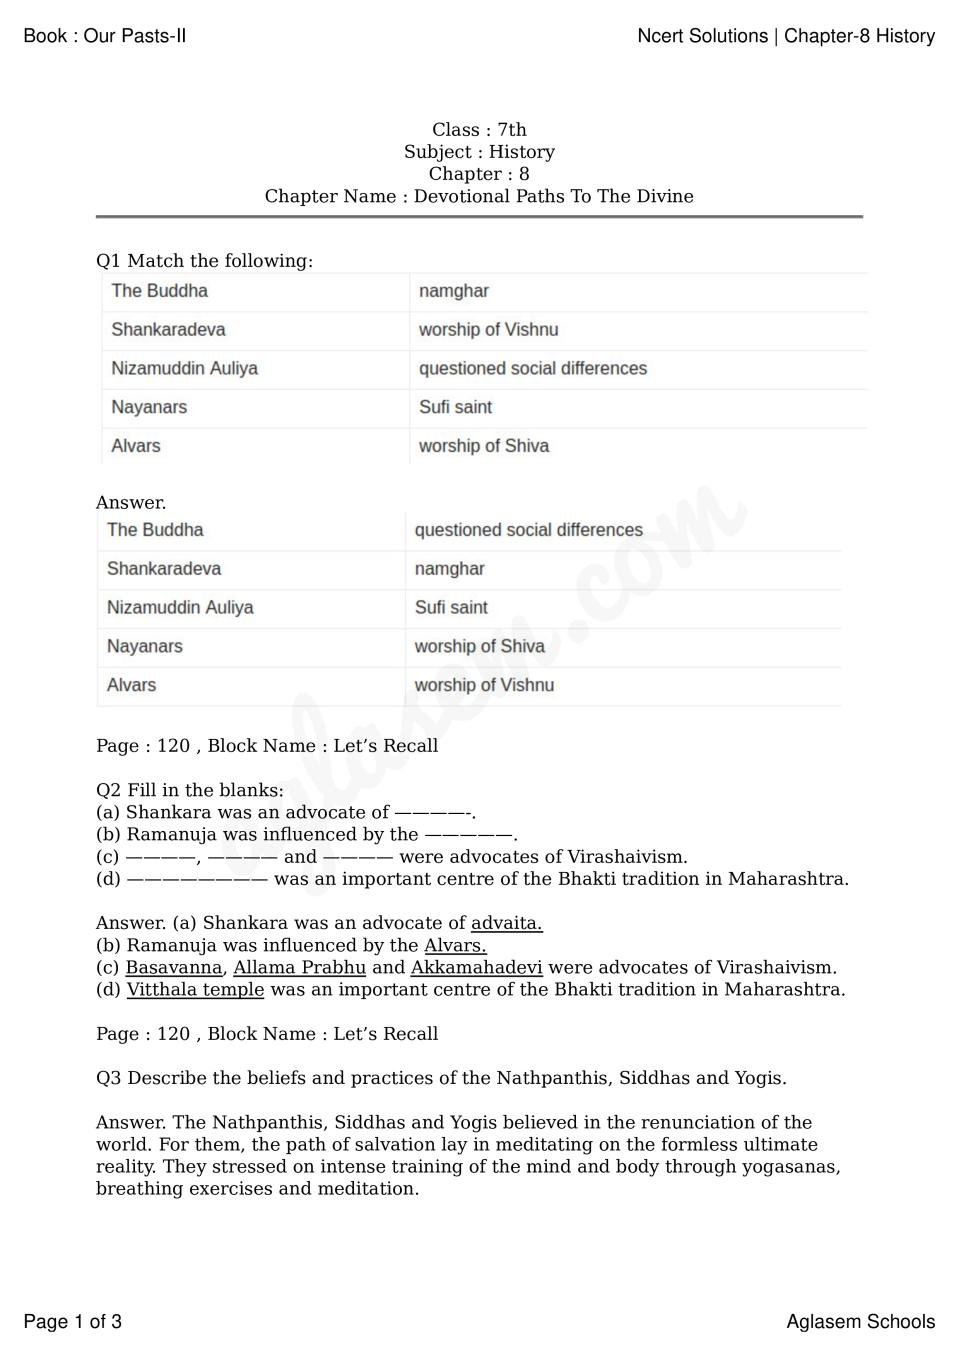 NCERT Solutions for Class 7 Social Science (History - Our